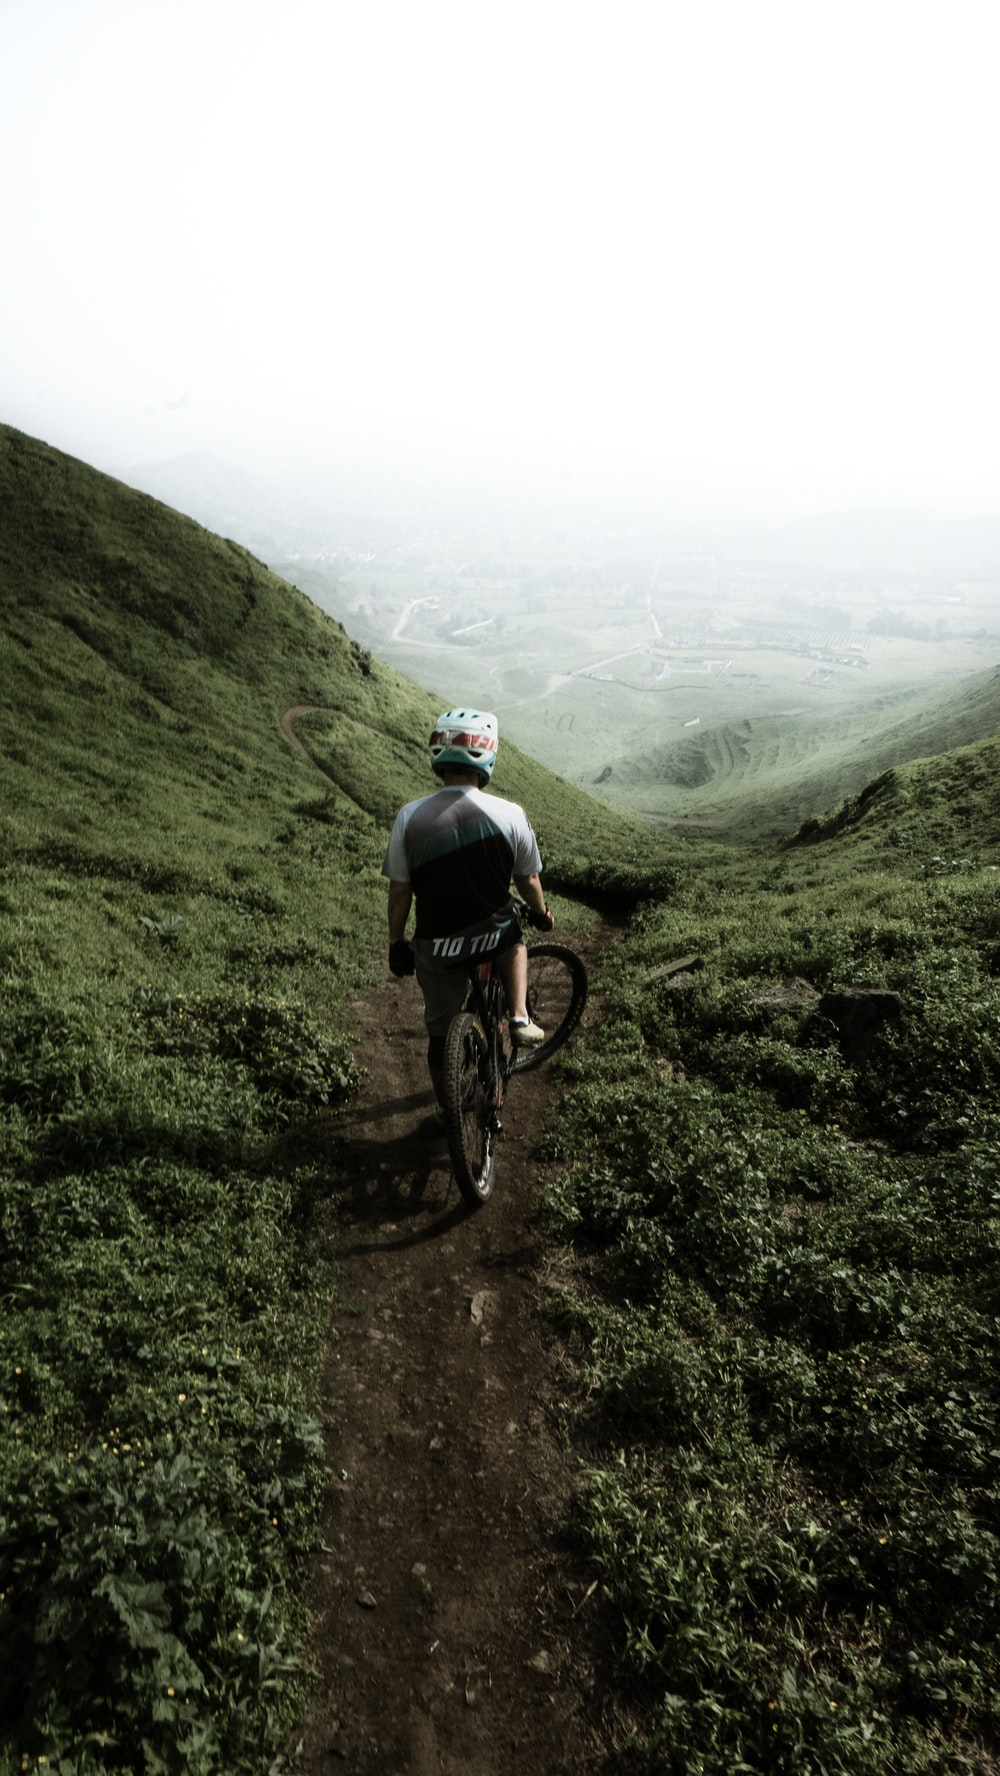 man riding bike on hill under white sky